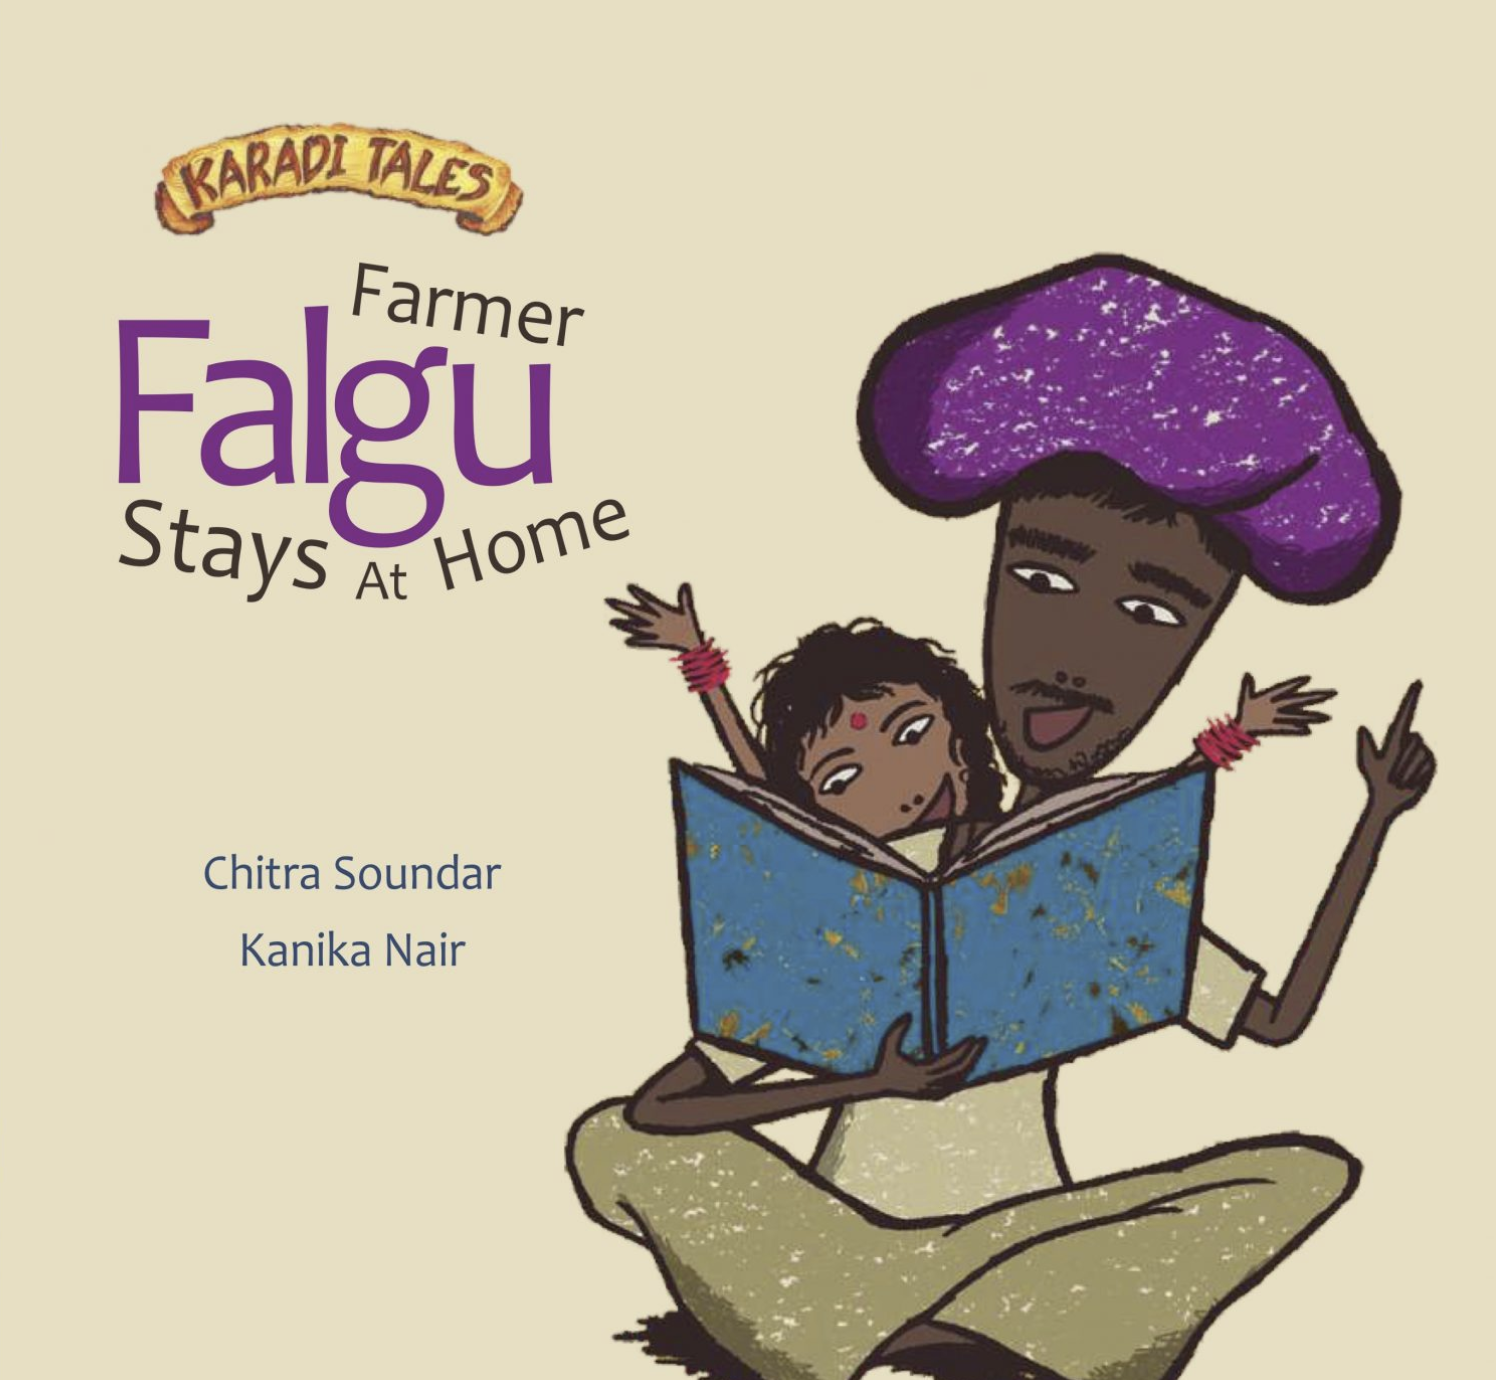 Farmer Falgu Stays at Home